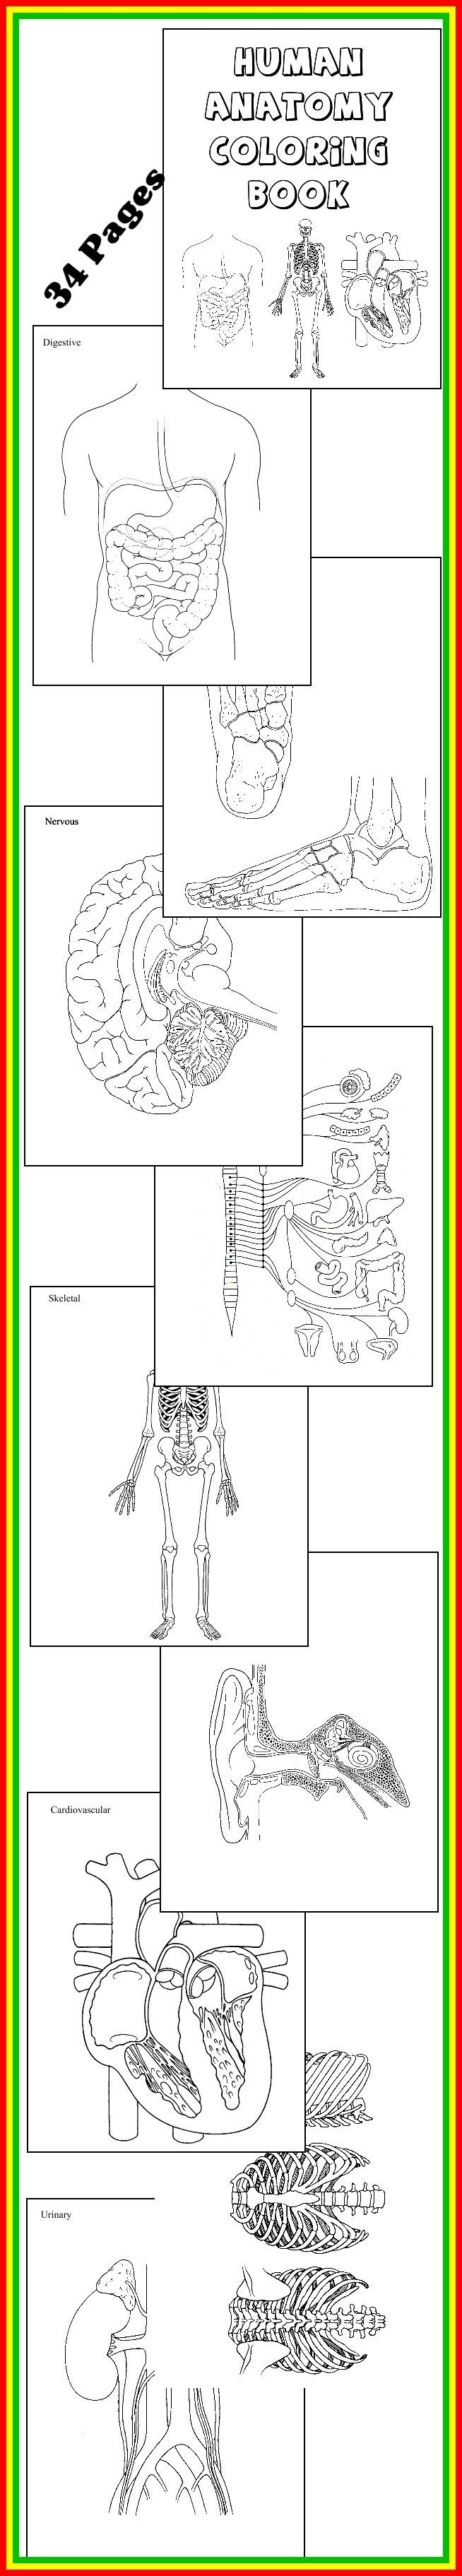 SCIENCE DOWNLOAD HUMAN ANATOMY COLORING BOOK 32 Diagrams To Color And Label Download Club Members Can